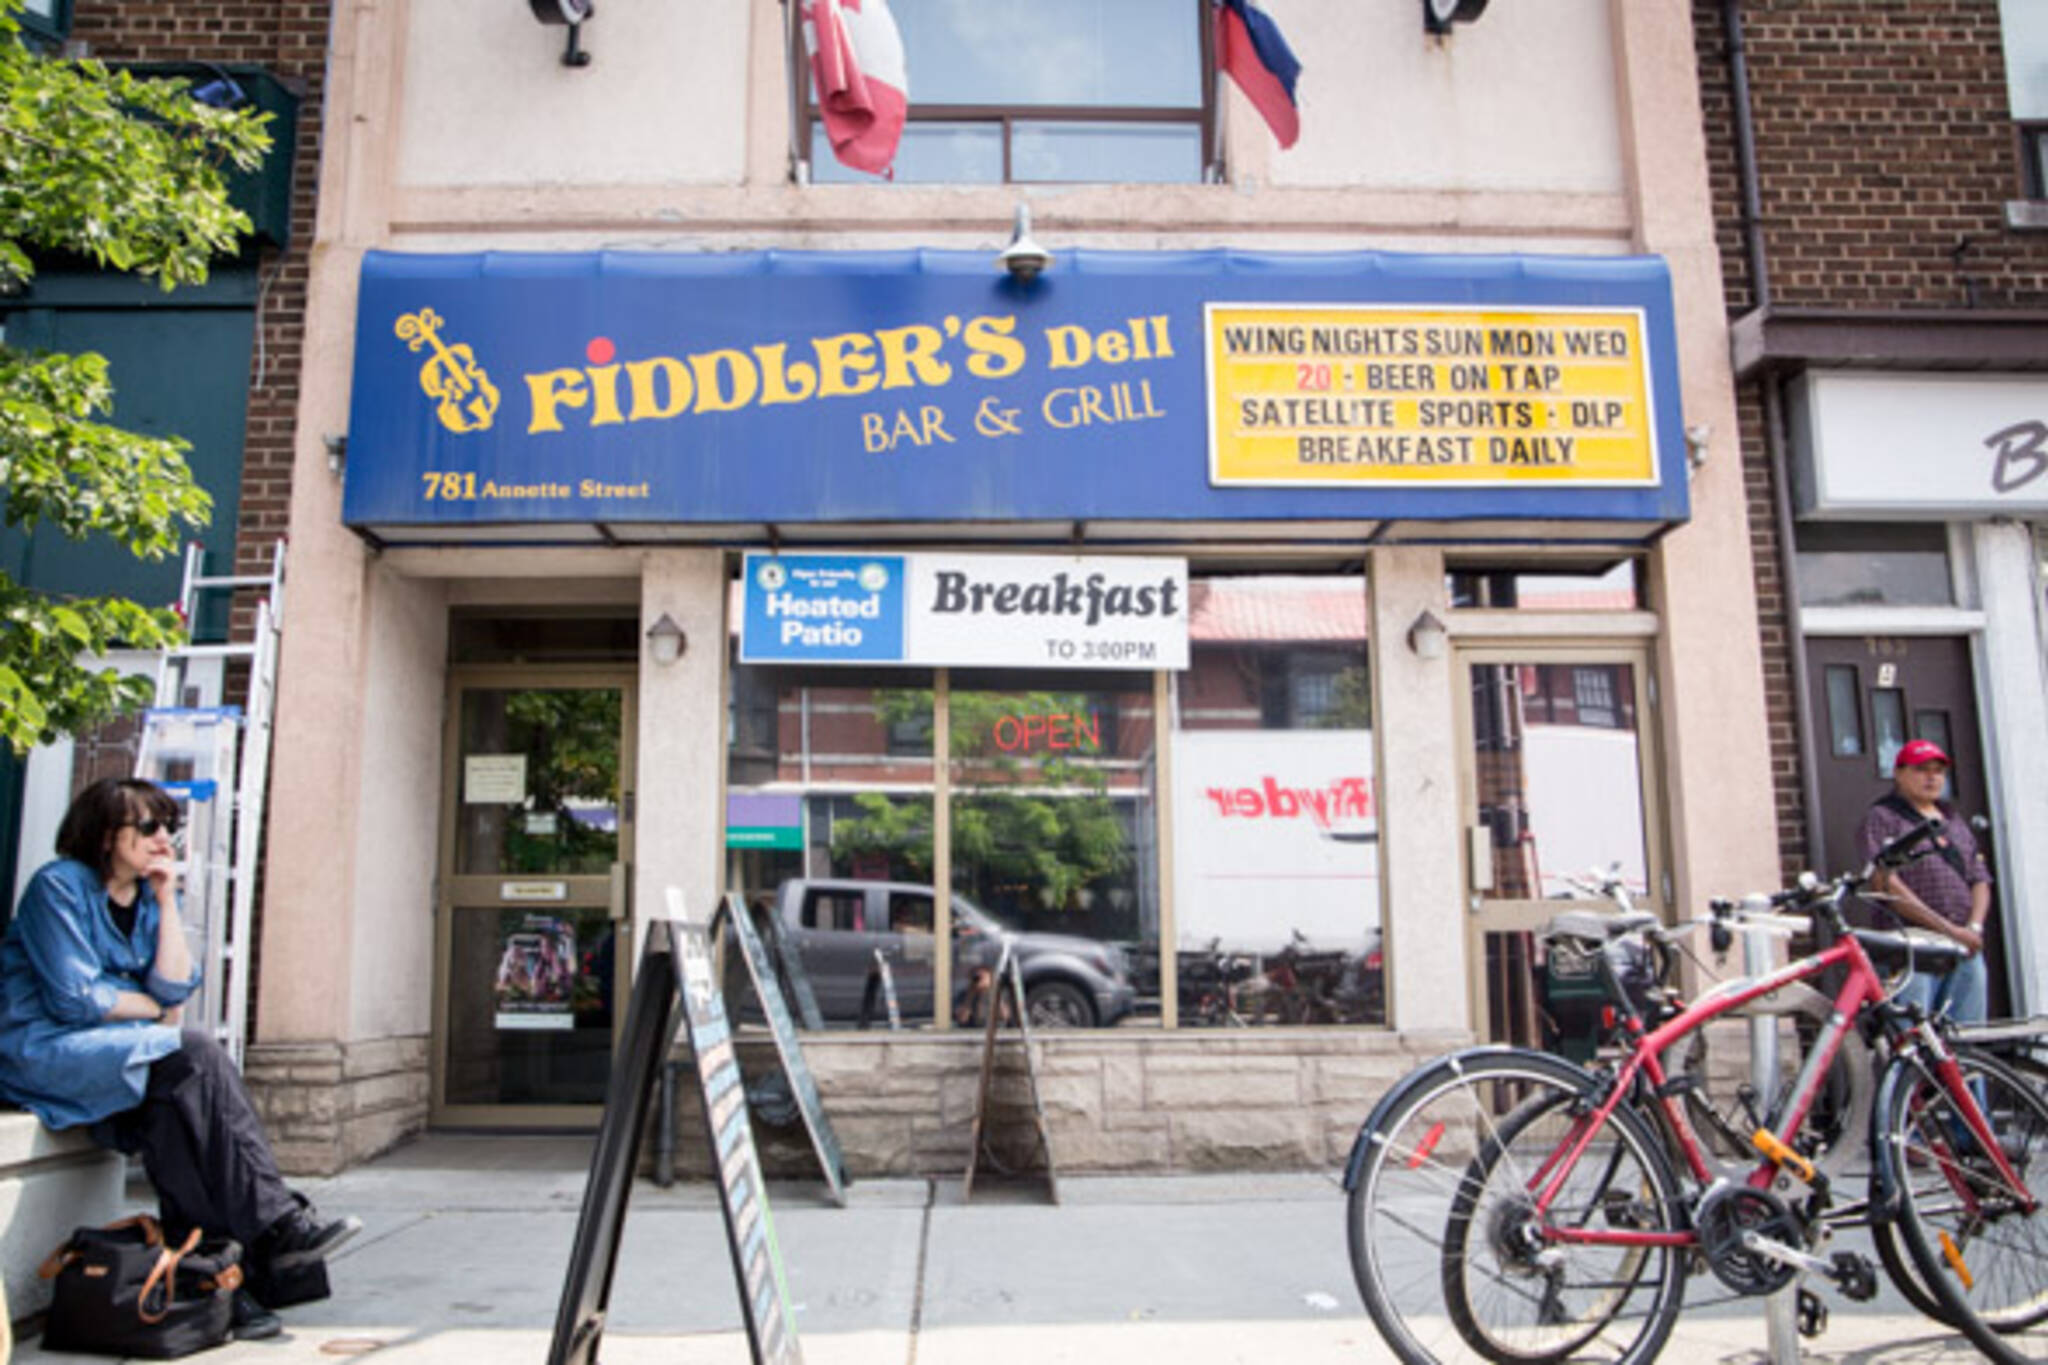 Fiddler's Dell Bar and Grill Toronto